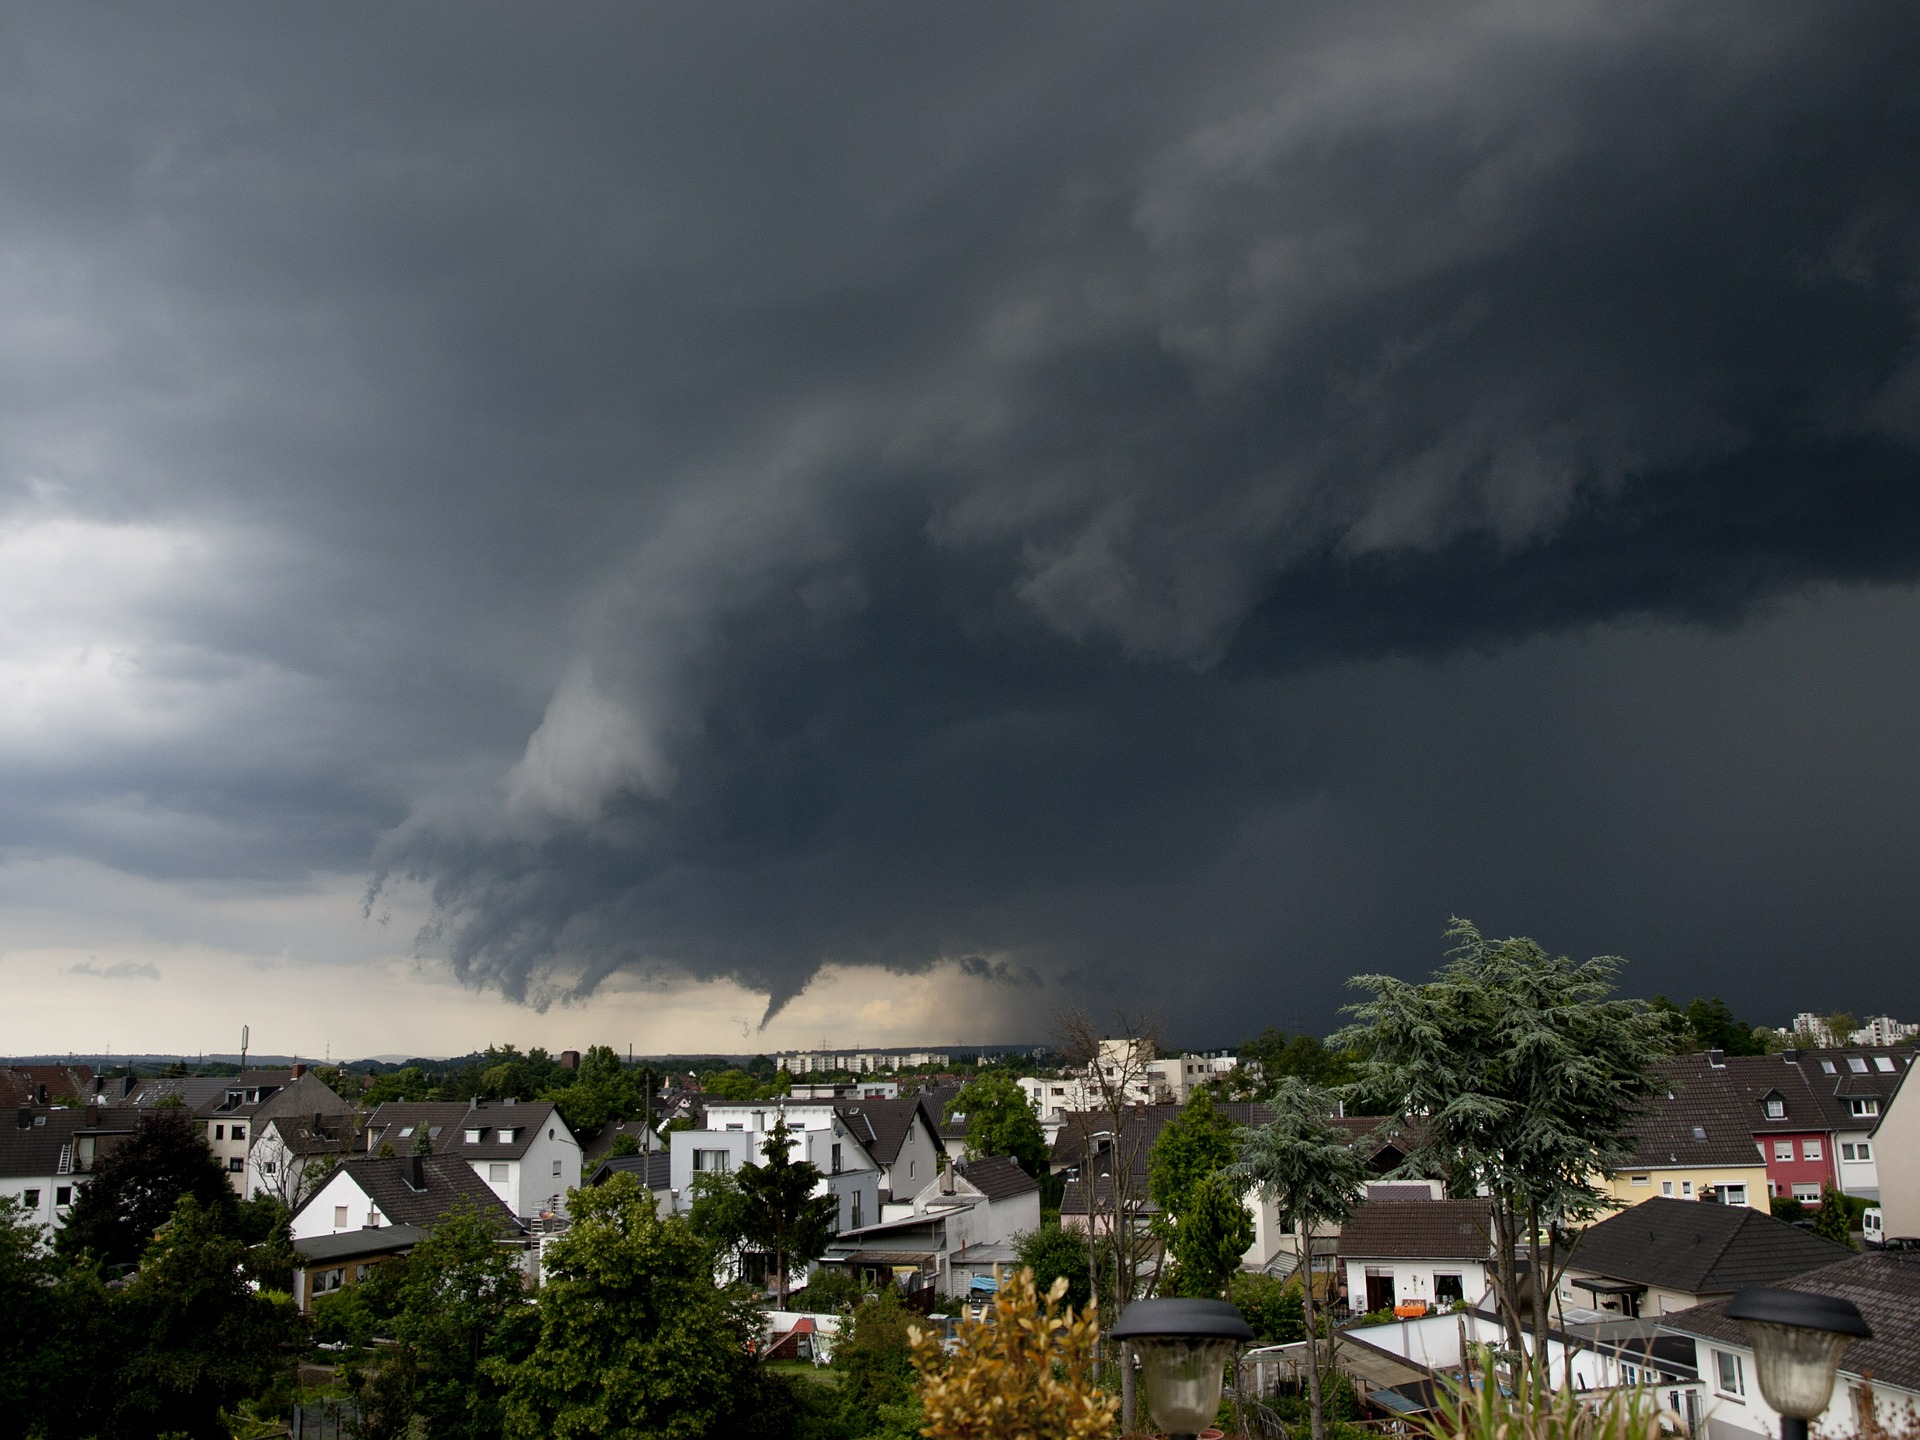 Stock photo of a thunderstorm that could produce tornadoes. Courtesy of Pixabay